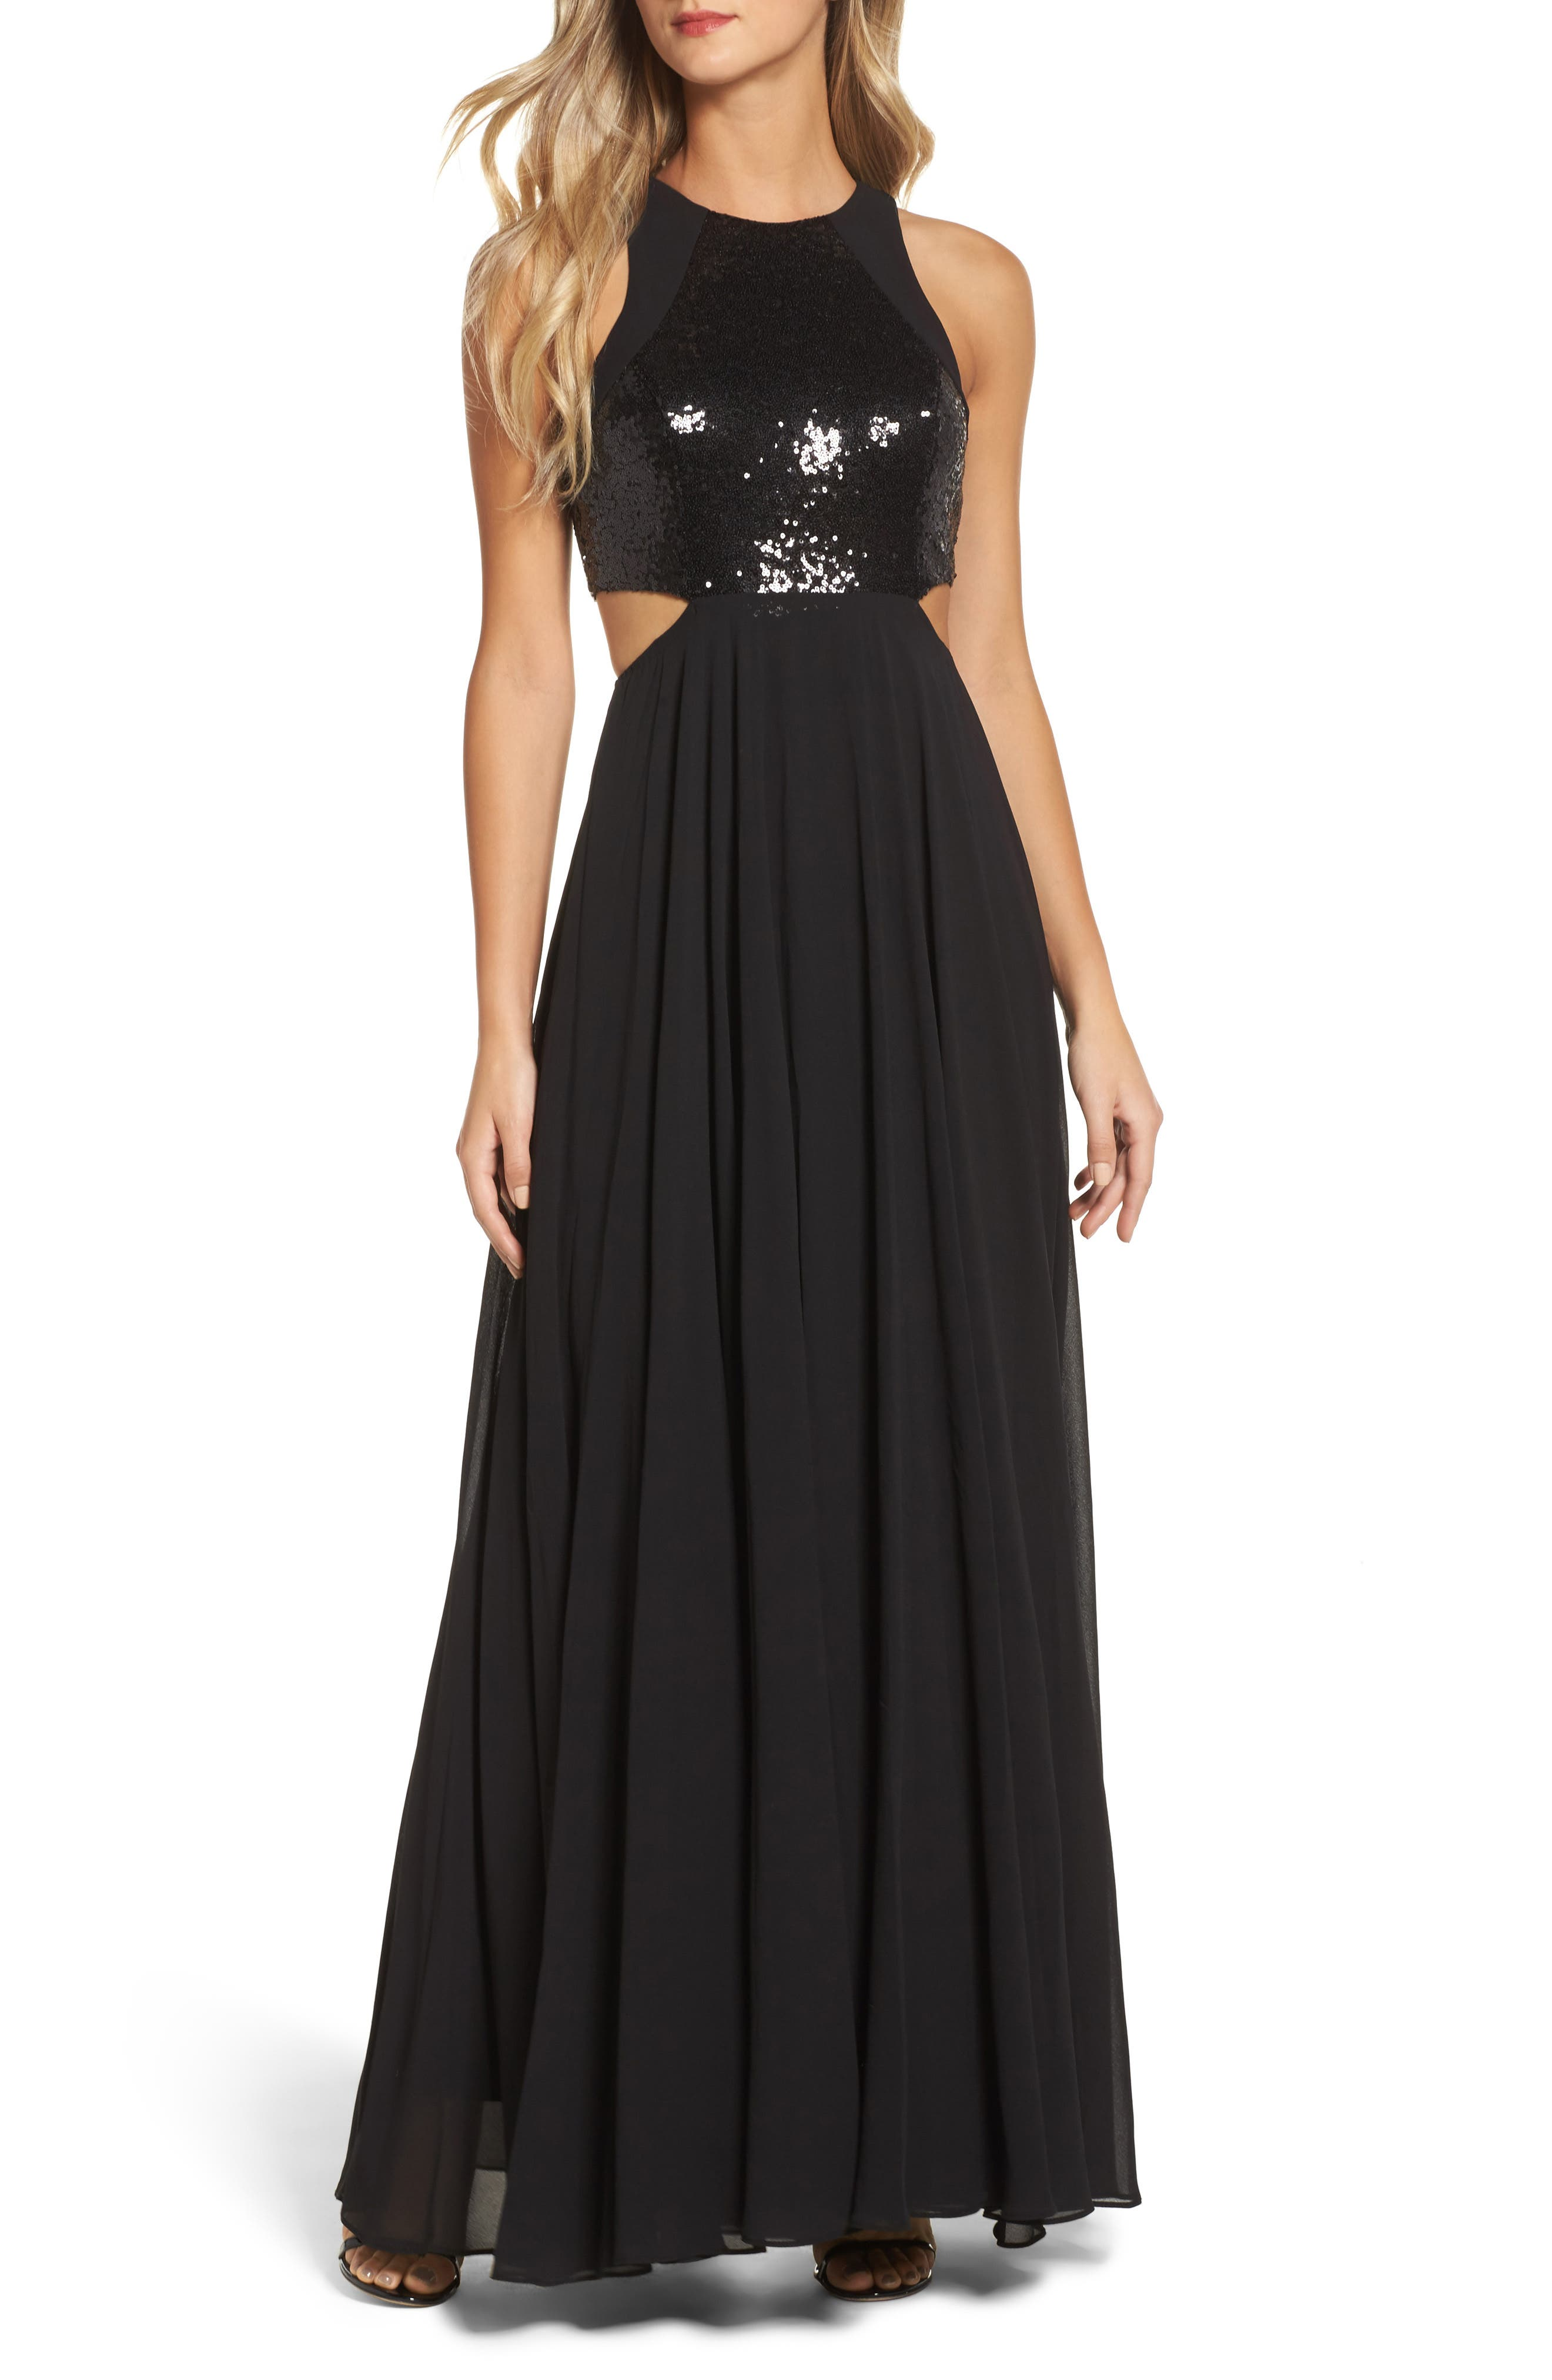 Nothing but Love Sequin Bodice Maxi Dress,                         Main,                         color, Black